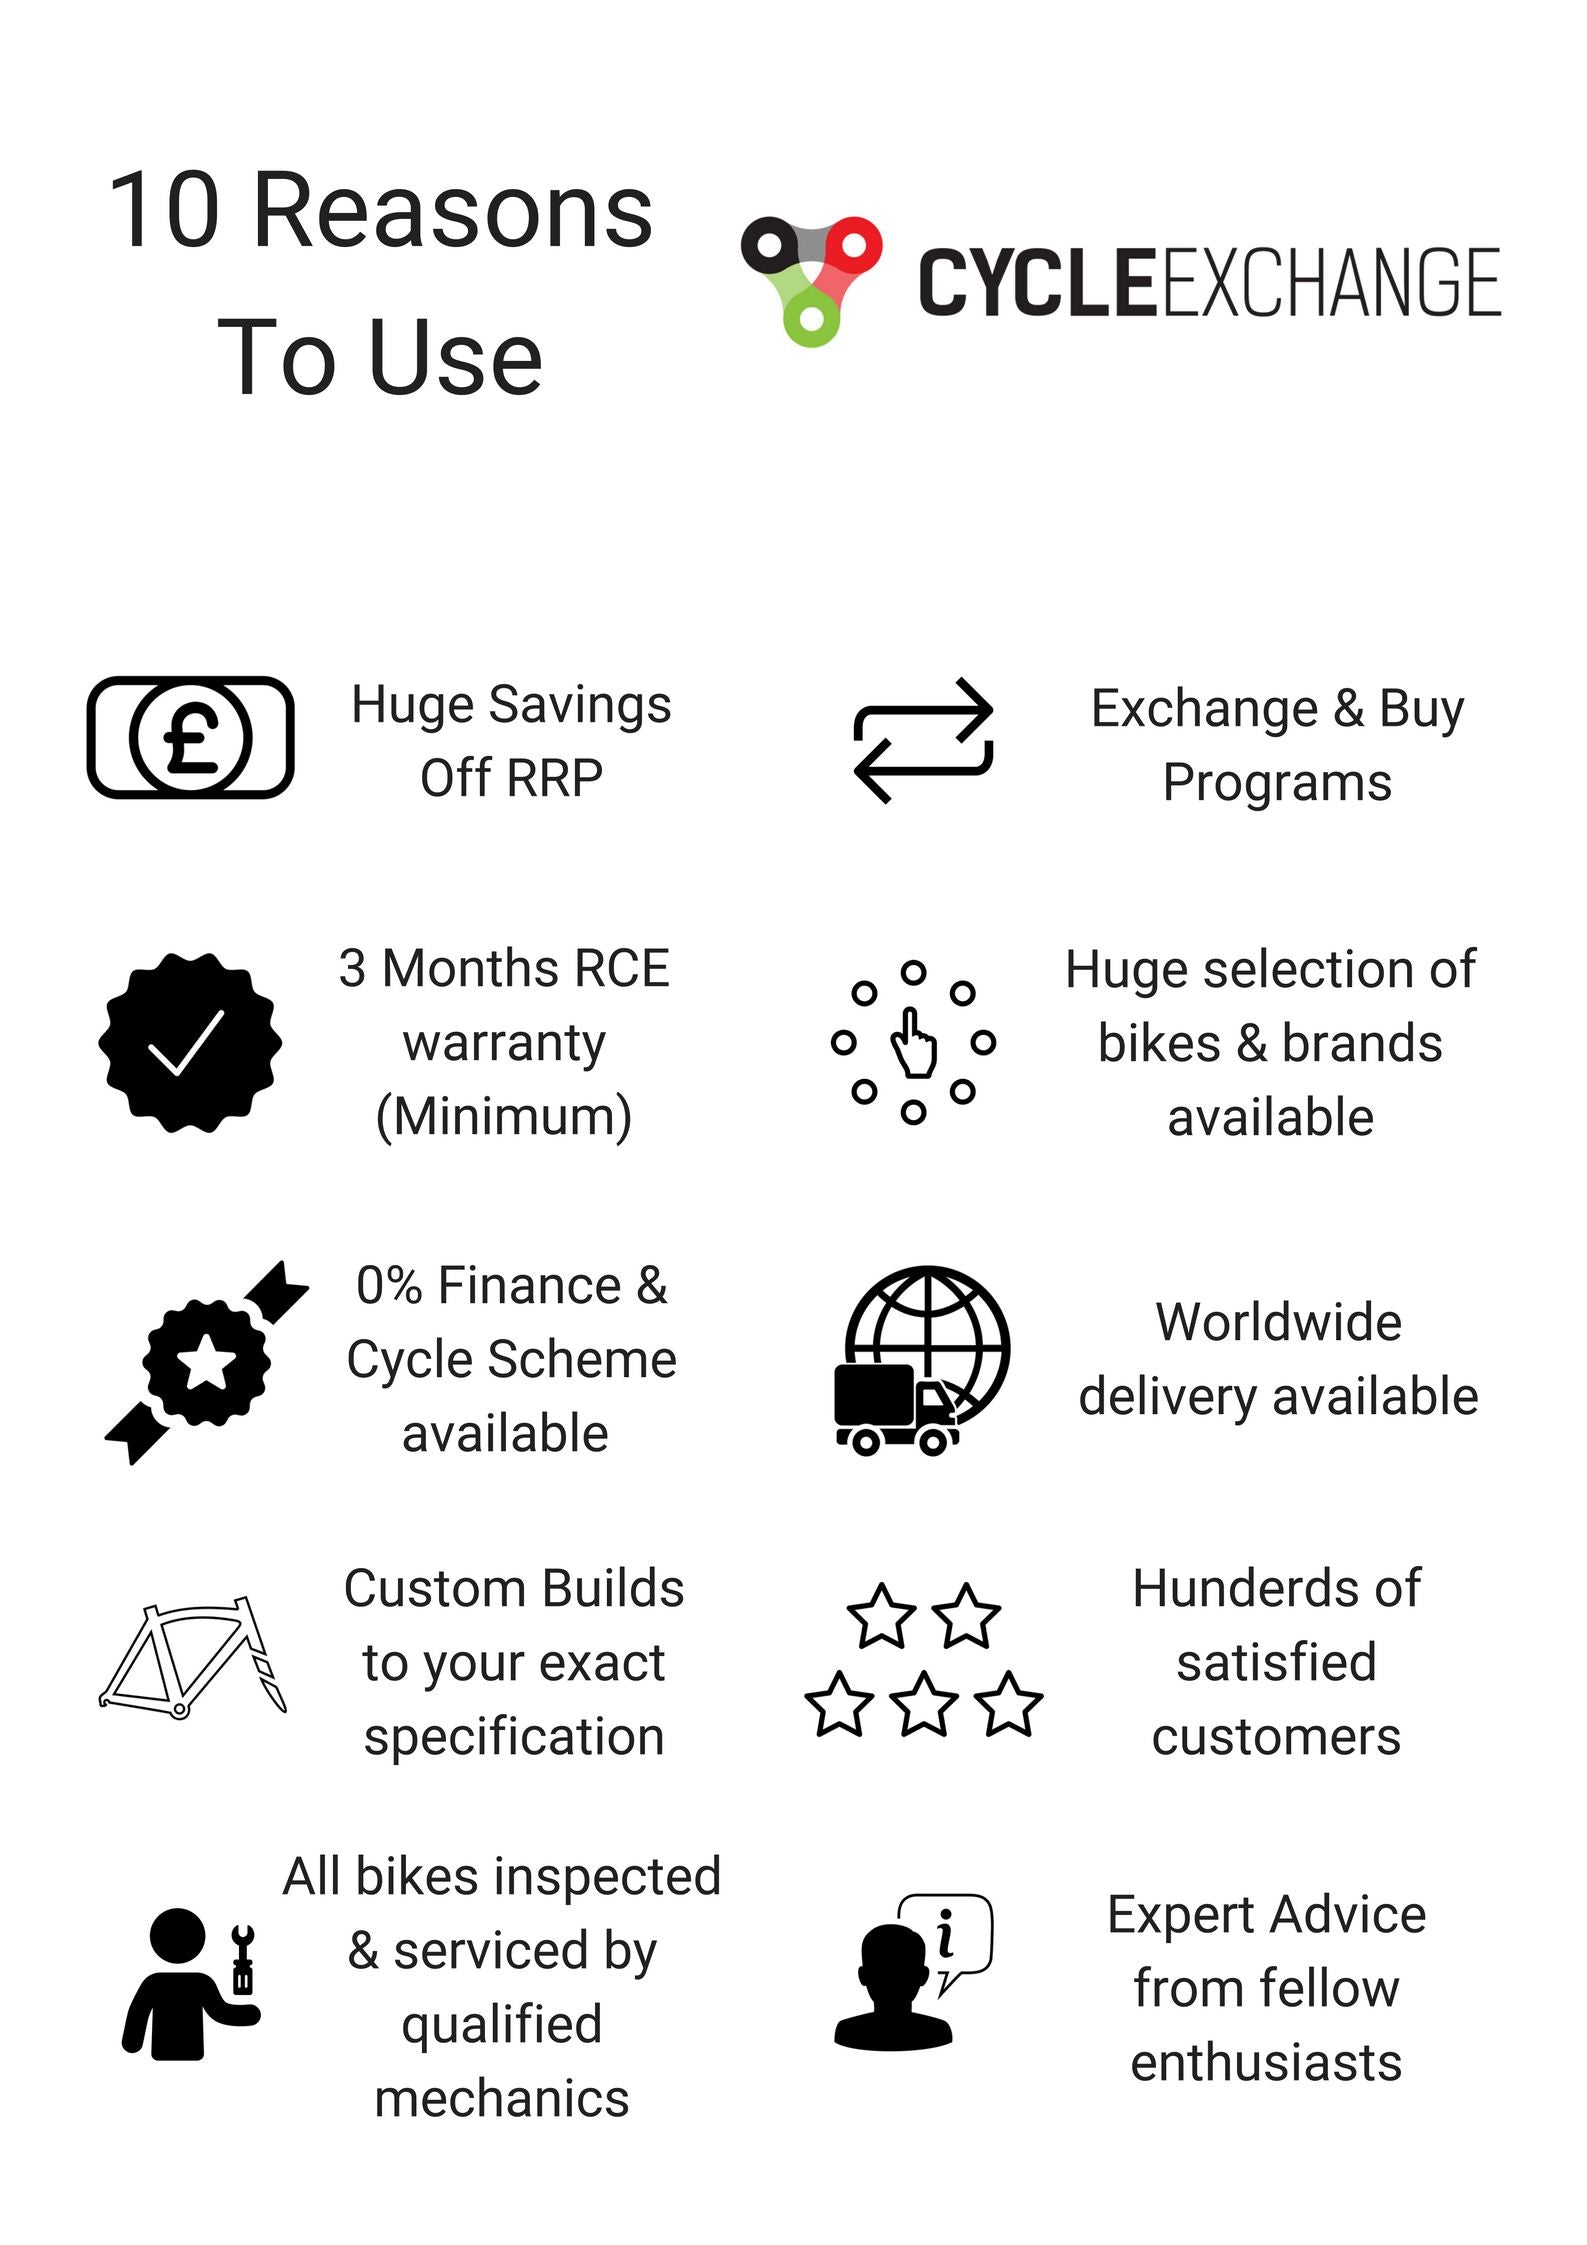 10 Reasons To Use Cycle Exchange